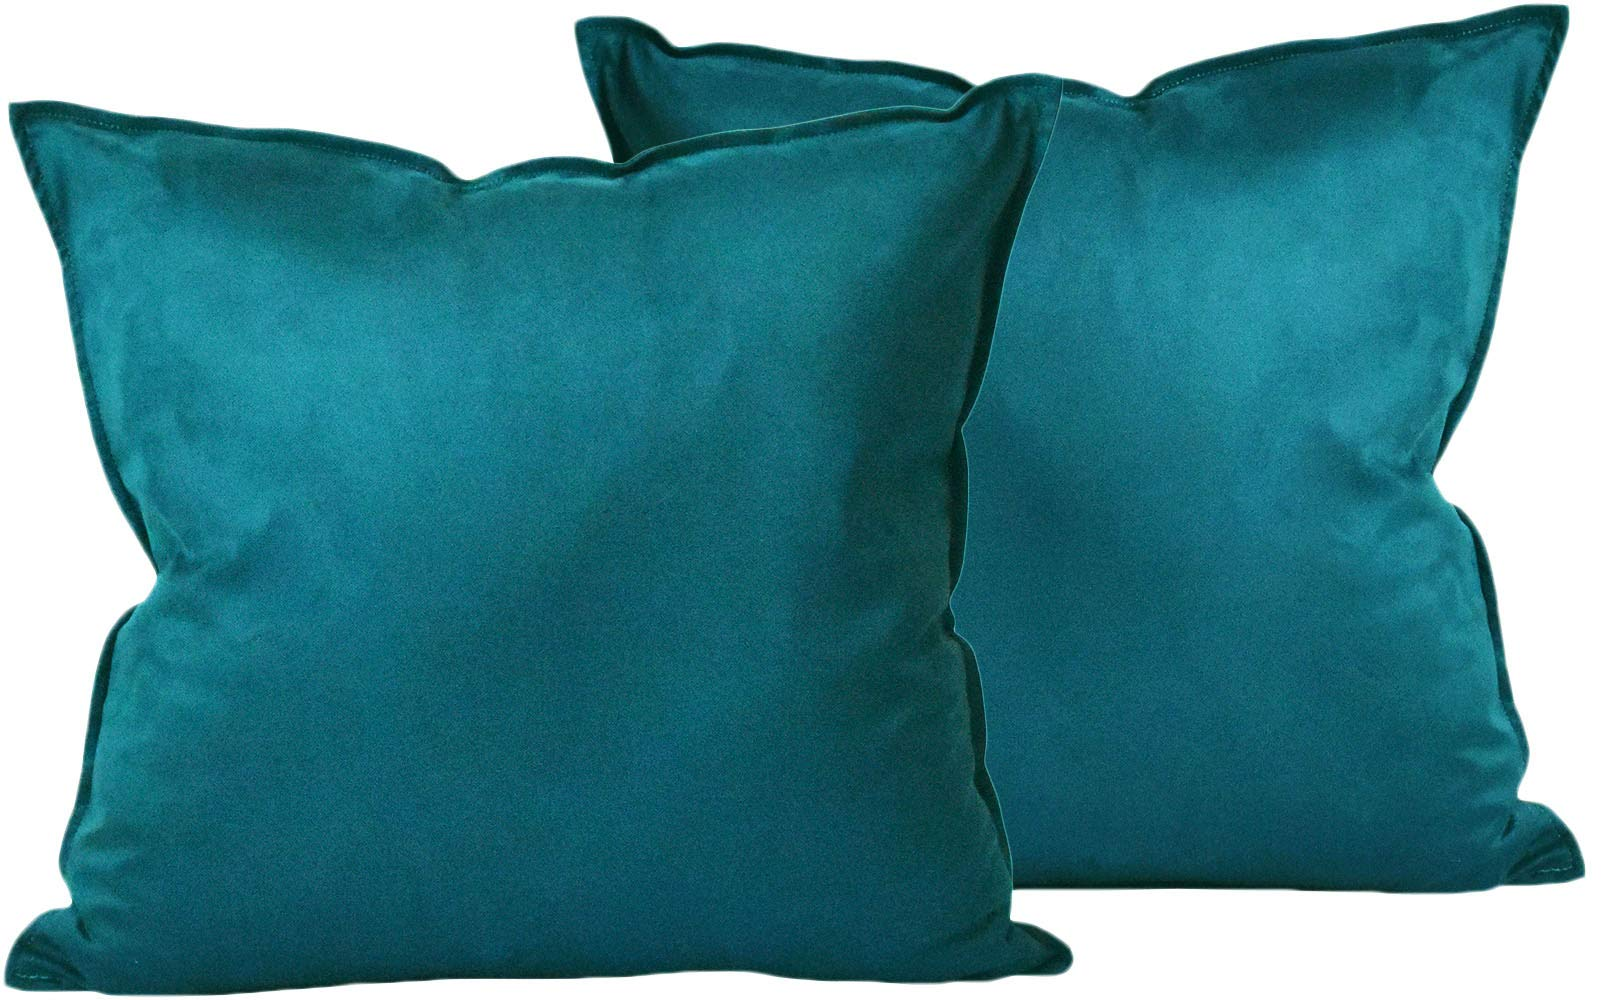 ZEALAX Set of 2 Decorative Throw Pillow Covers Comfortable Cushion Covers Pillowcases for Sofa Couch Home Decor, 18 x 18 inches, Dark Teal